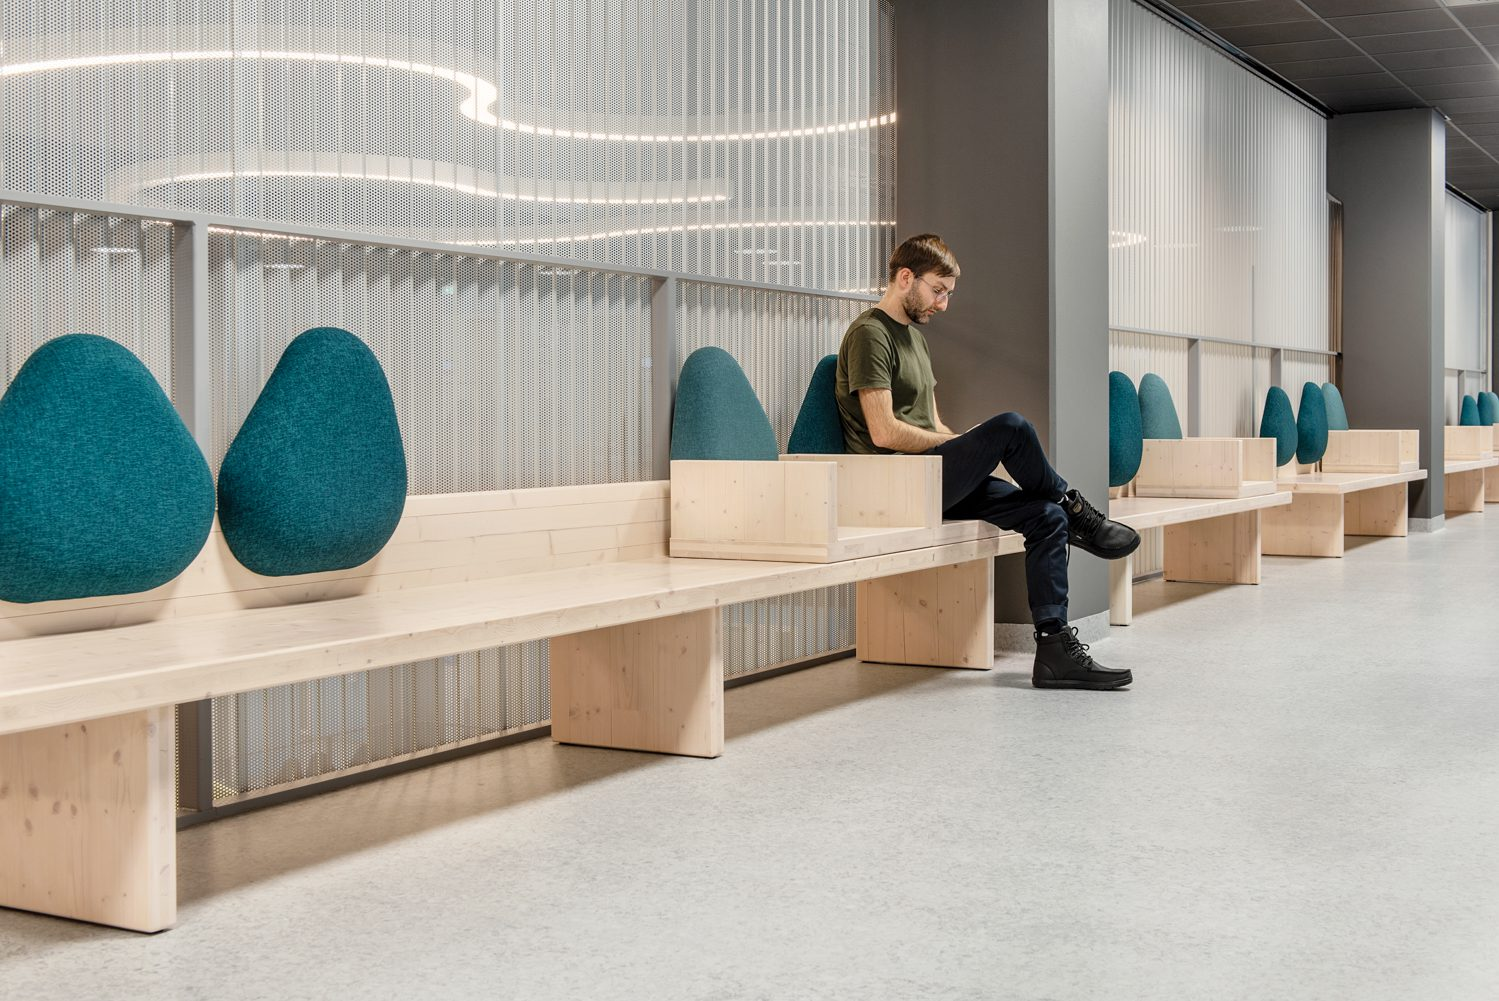 The atrium's custom cross-laminated timber benches—ranging from 5 to 14 feet long—have moveable polyester cushions that can be leaned against or sat on. Photography: Pauliina Salonen.